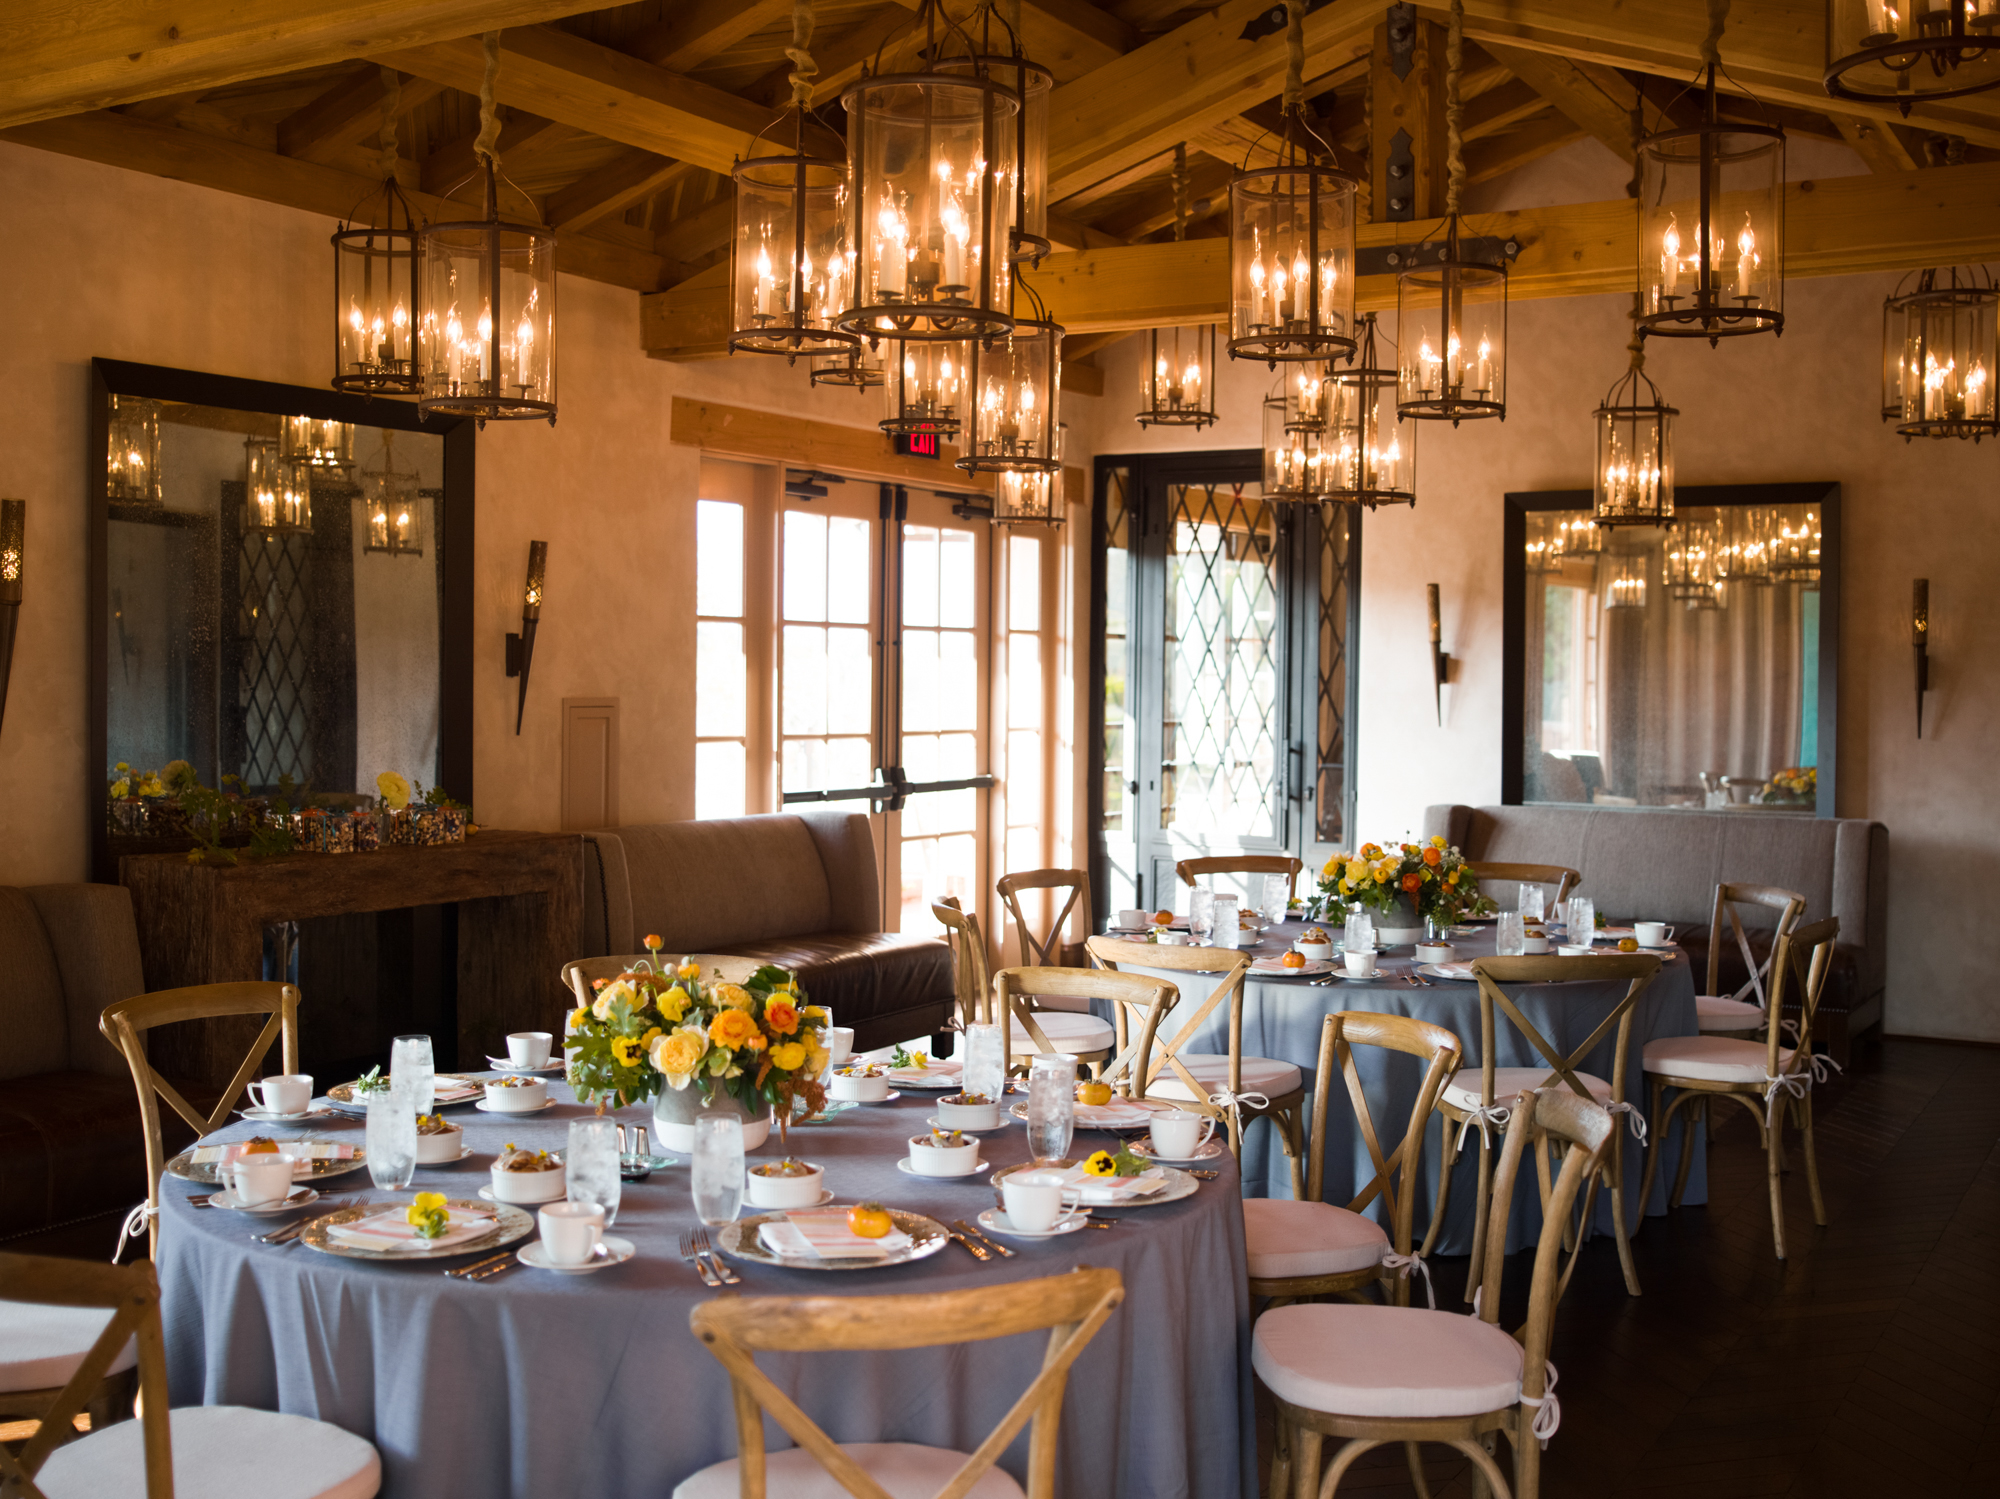 Rancho Valencia FAM Trip: Breakfast - Olive Willow Designs